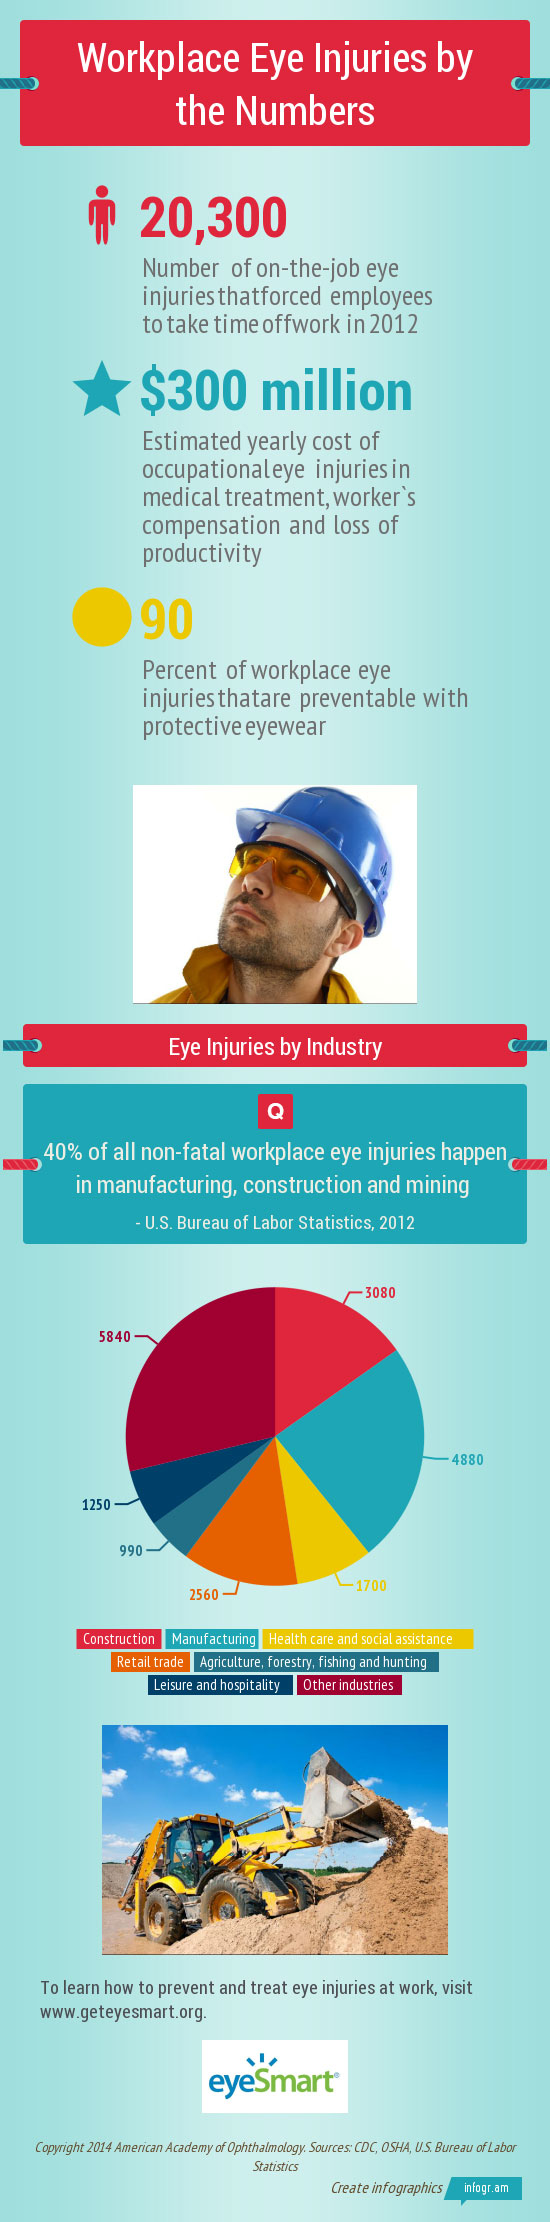 Workplace-Eye-Injuries-March-2014-550px